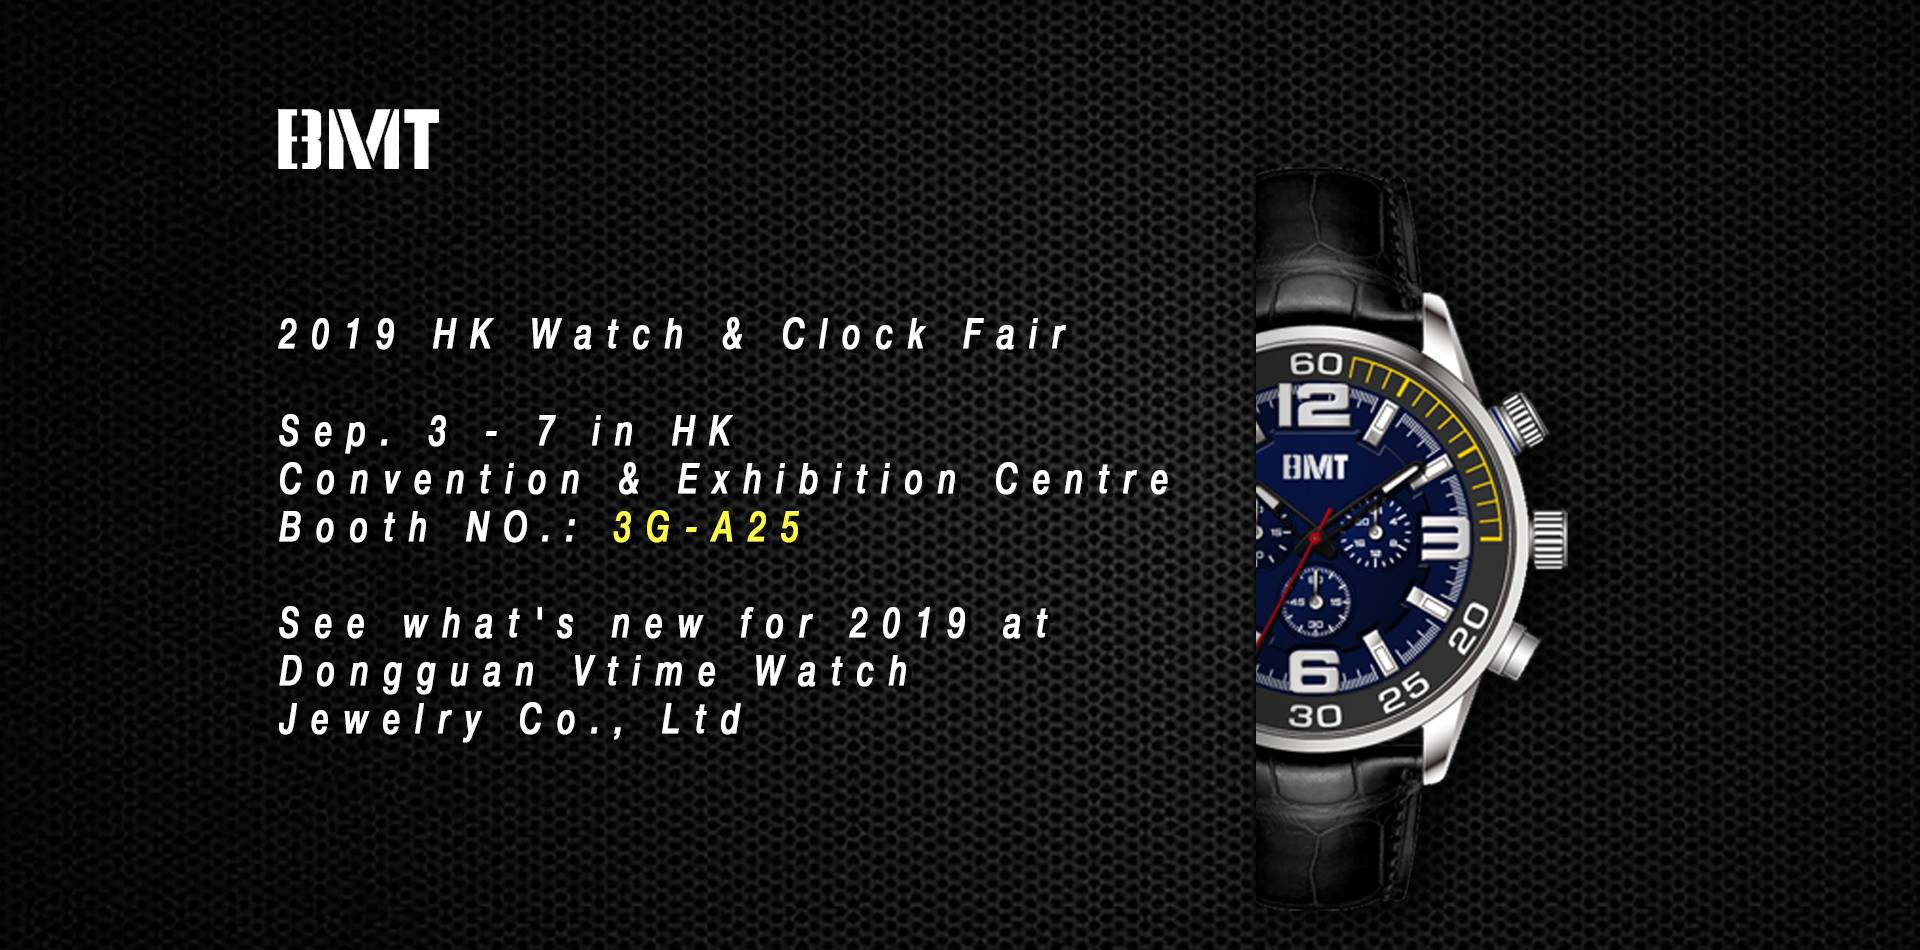 1-Vtime-at-hk-watch-fair-2019